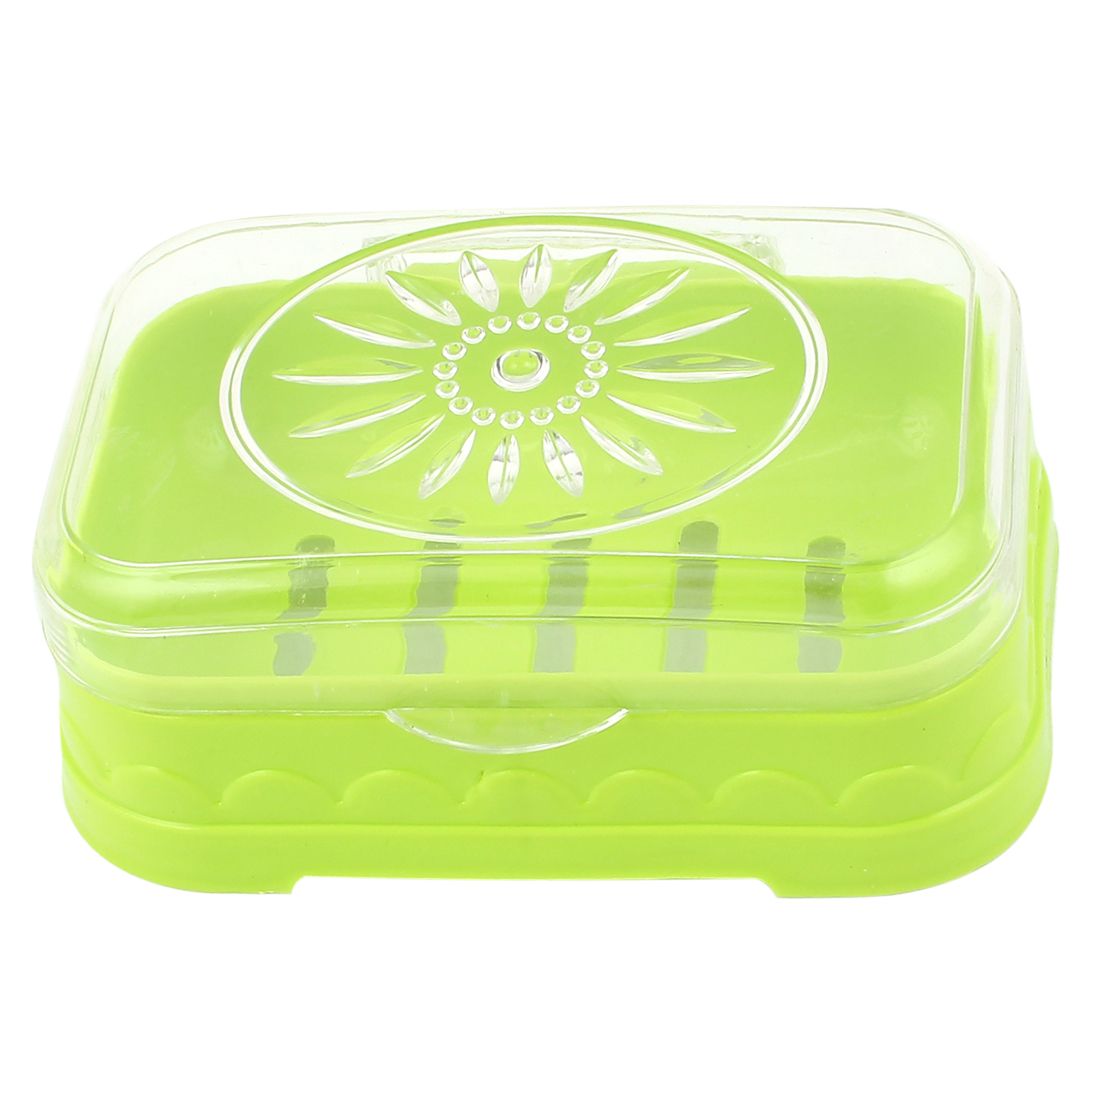 Green Clear Plastic Hollow Out Bottom Rectangular Soap Dish Holder Container Box